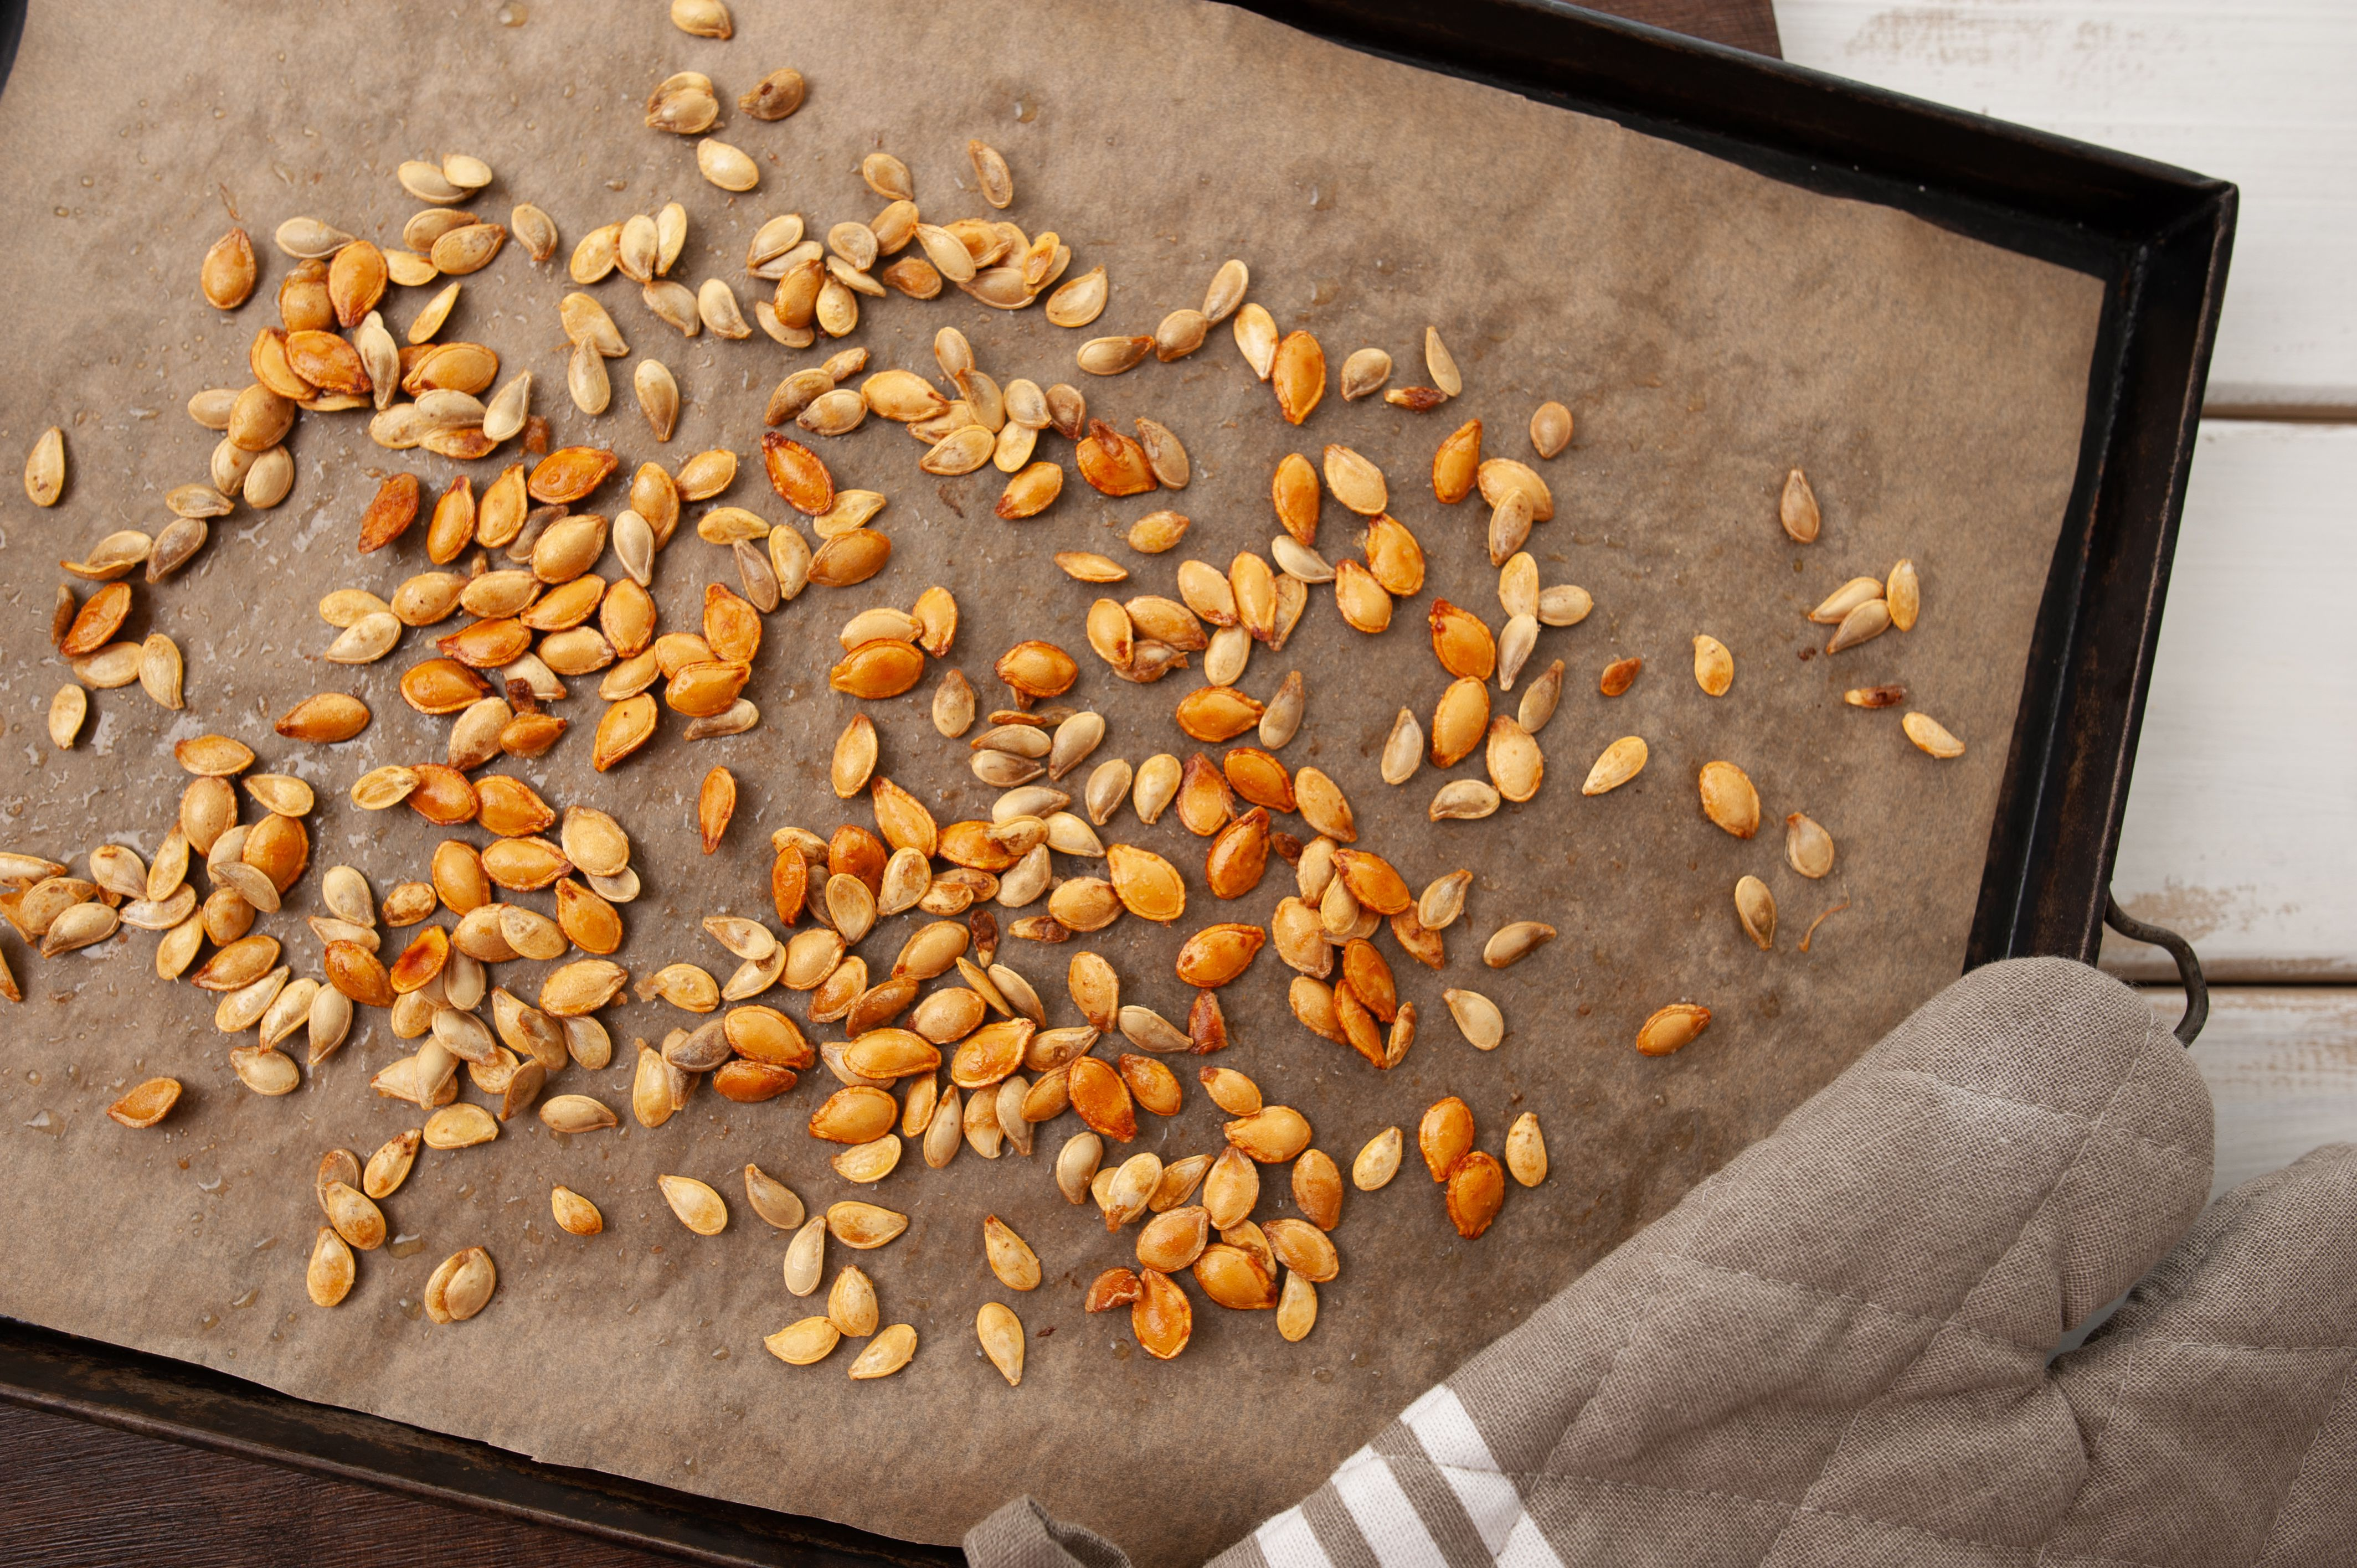 Baked seeds